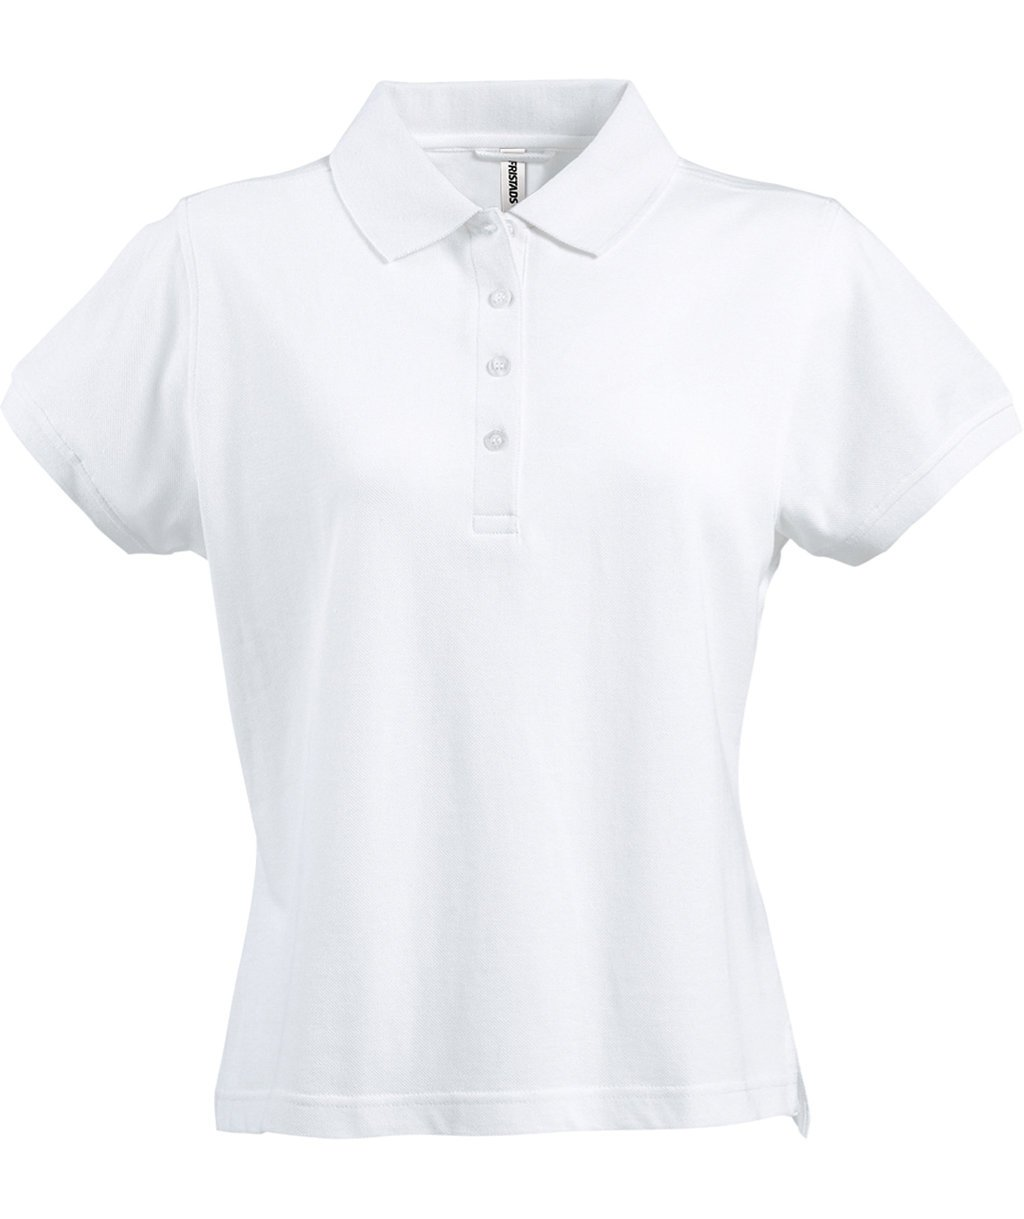 Fristads Acode Heavy women's polo T-shirt, White